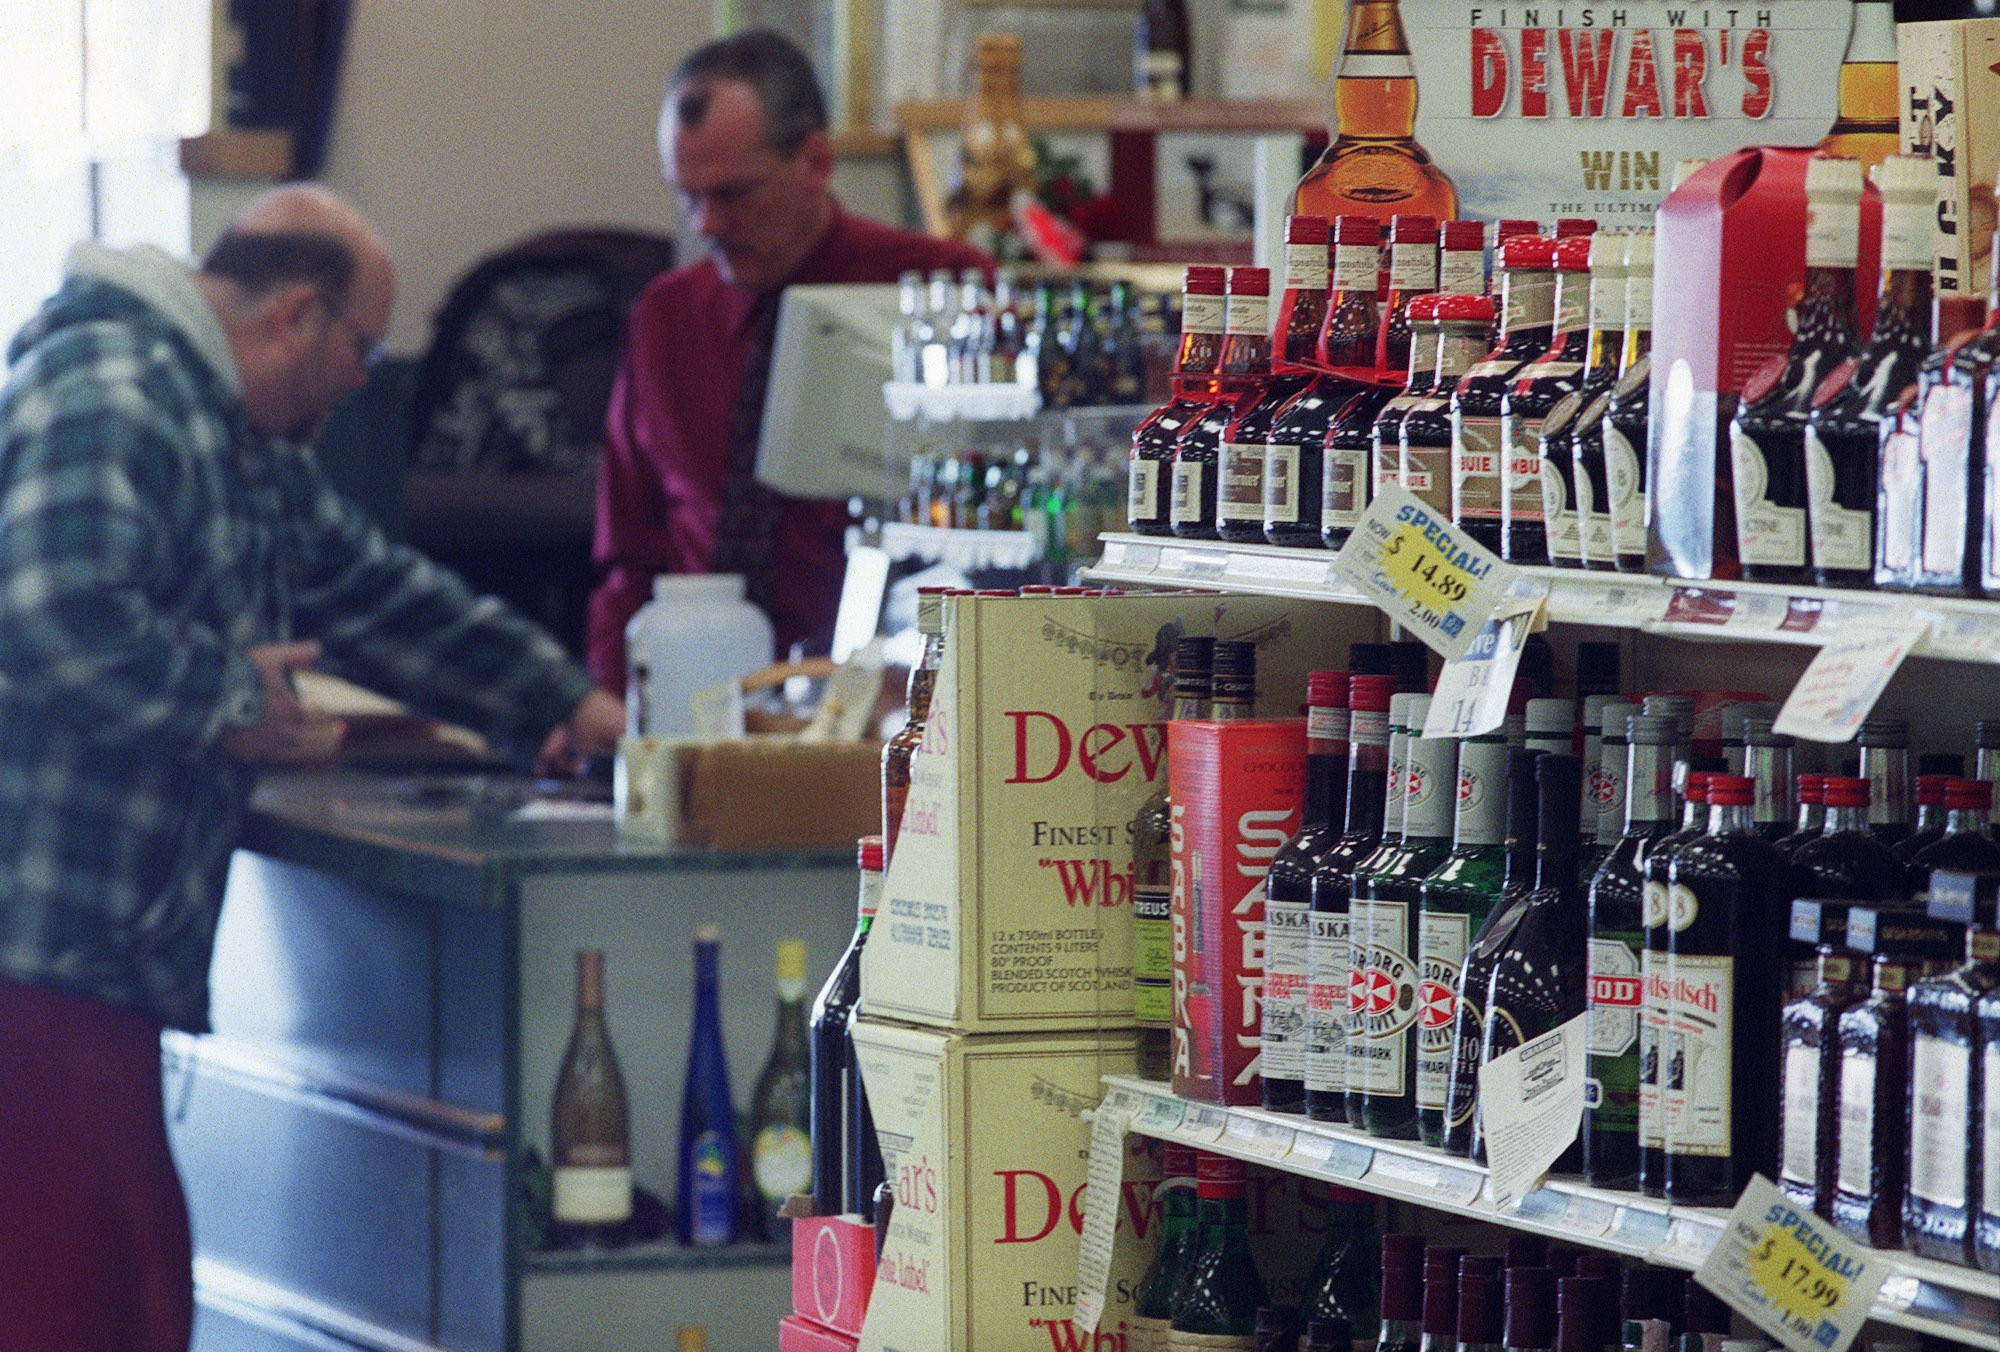 Pennsylvania Liquor Control Board Cool Allowing Sunday Sales Of Alcohol How D that Work Out